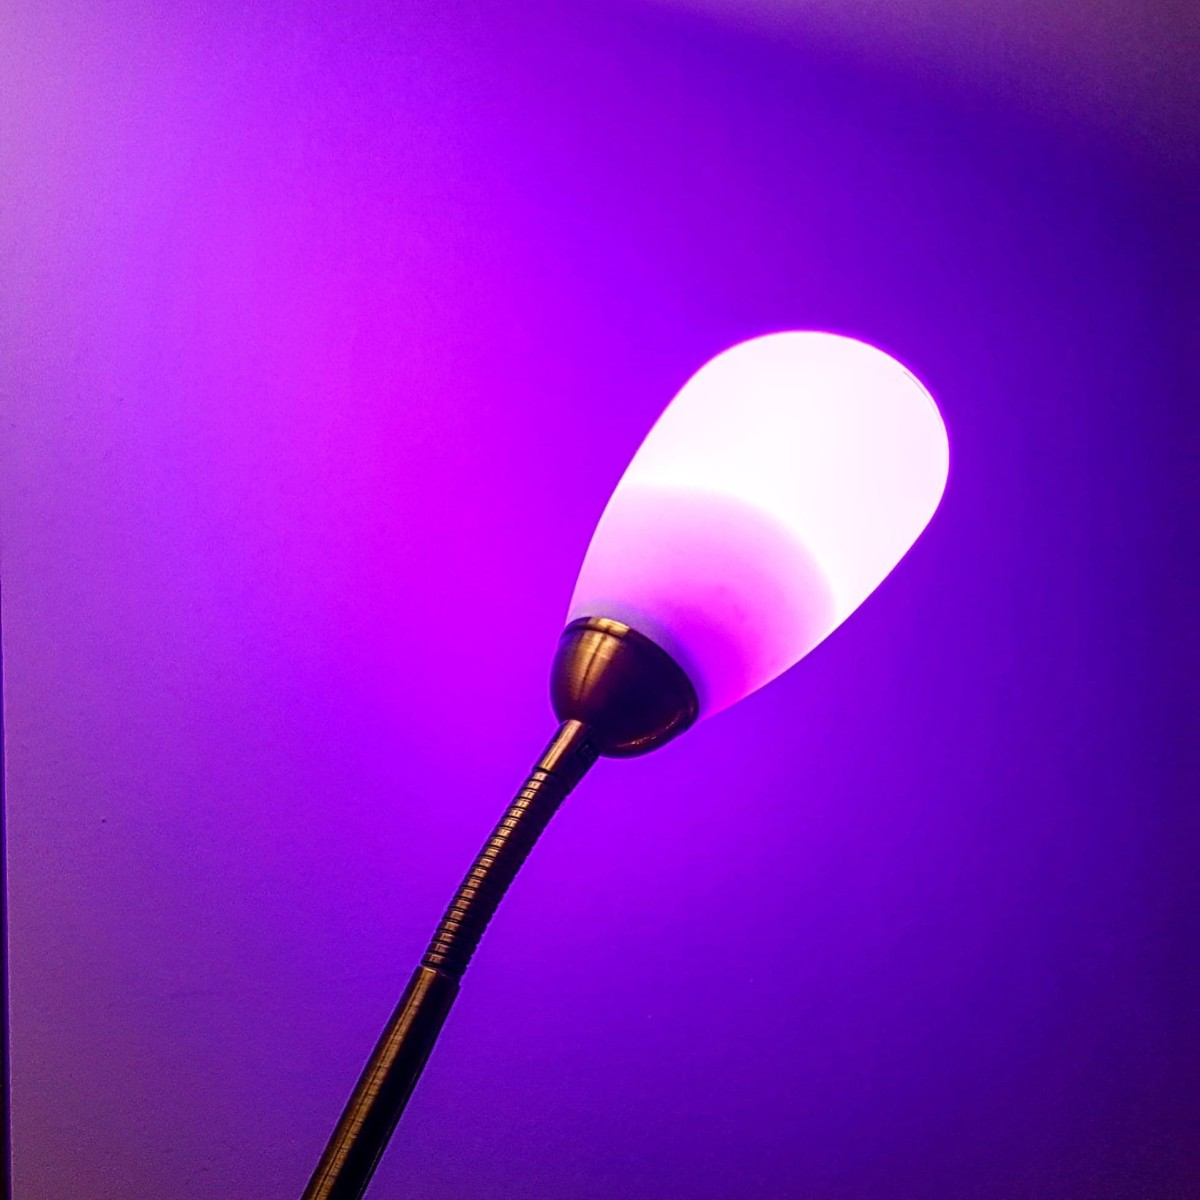 The LOHAS LED E14 Smart Candle Colour Changing Light Bulb in the living room, set to purple.